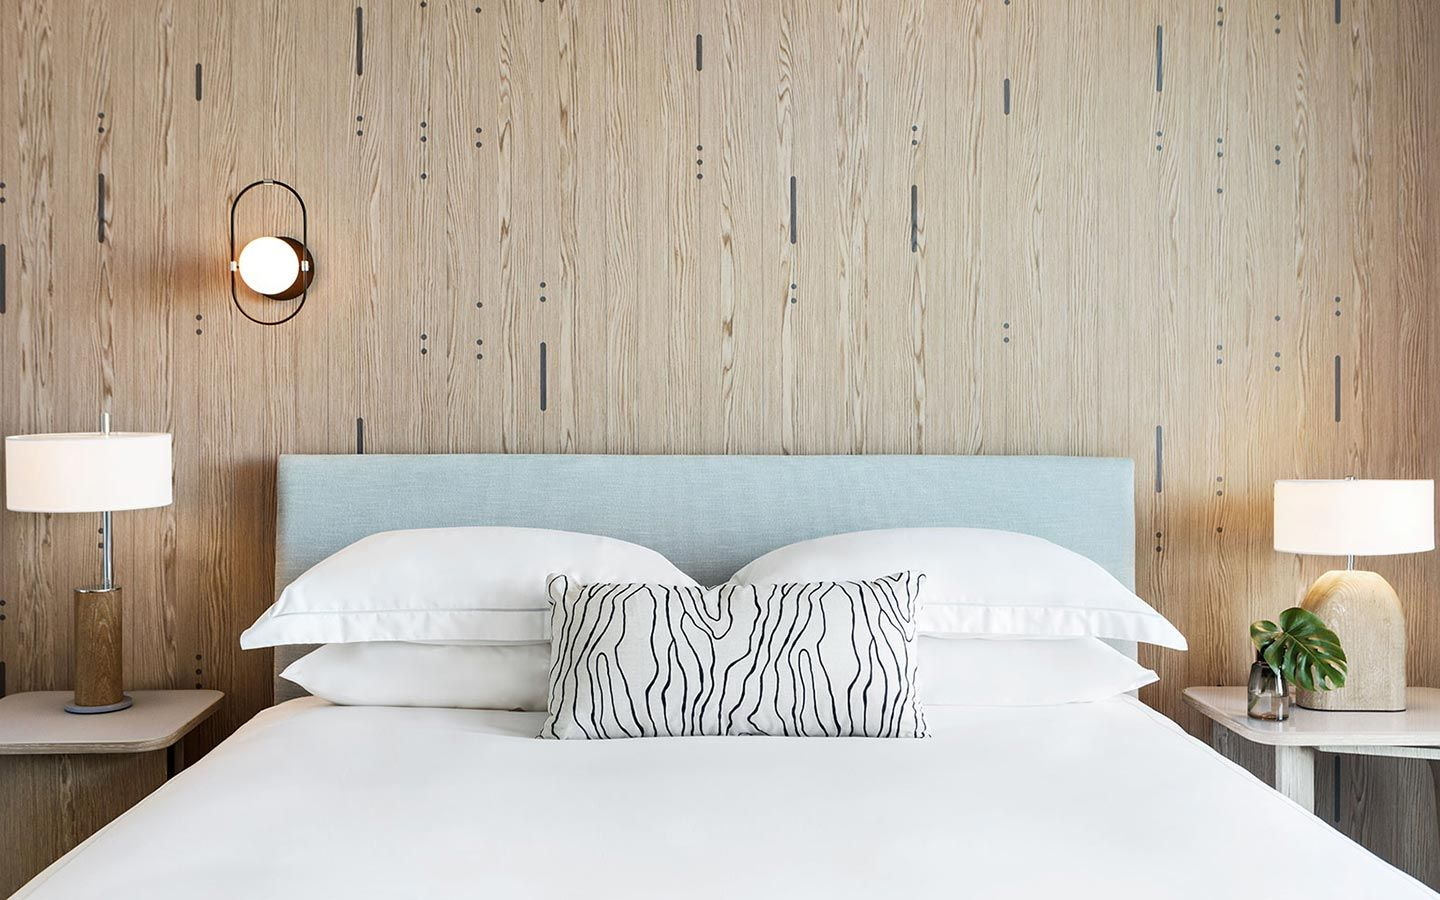 Miami's Hotels for Essential Lodging